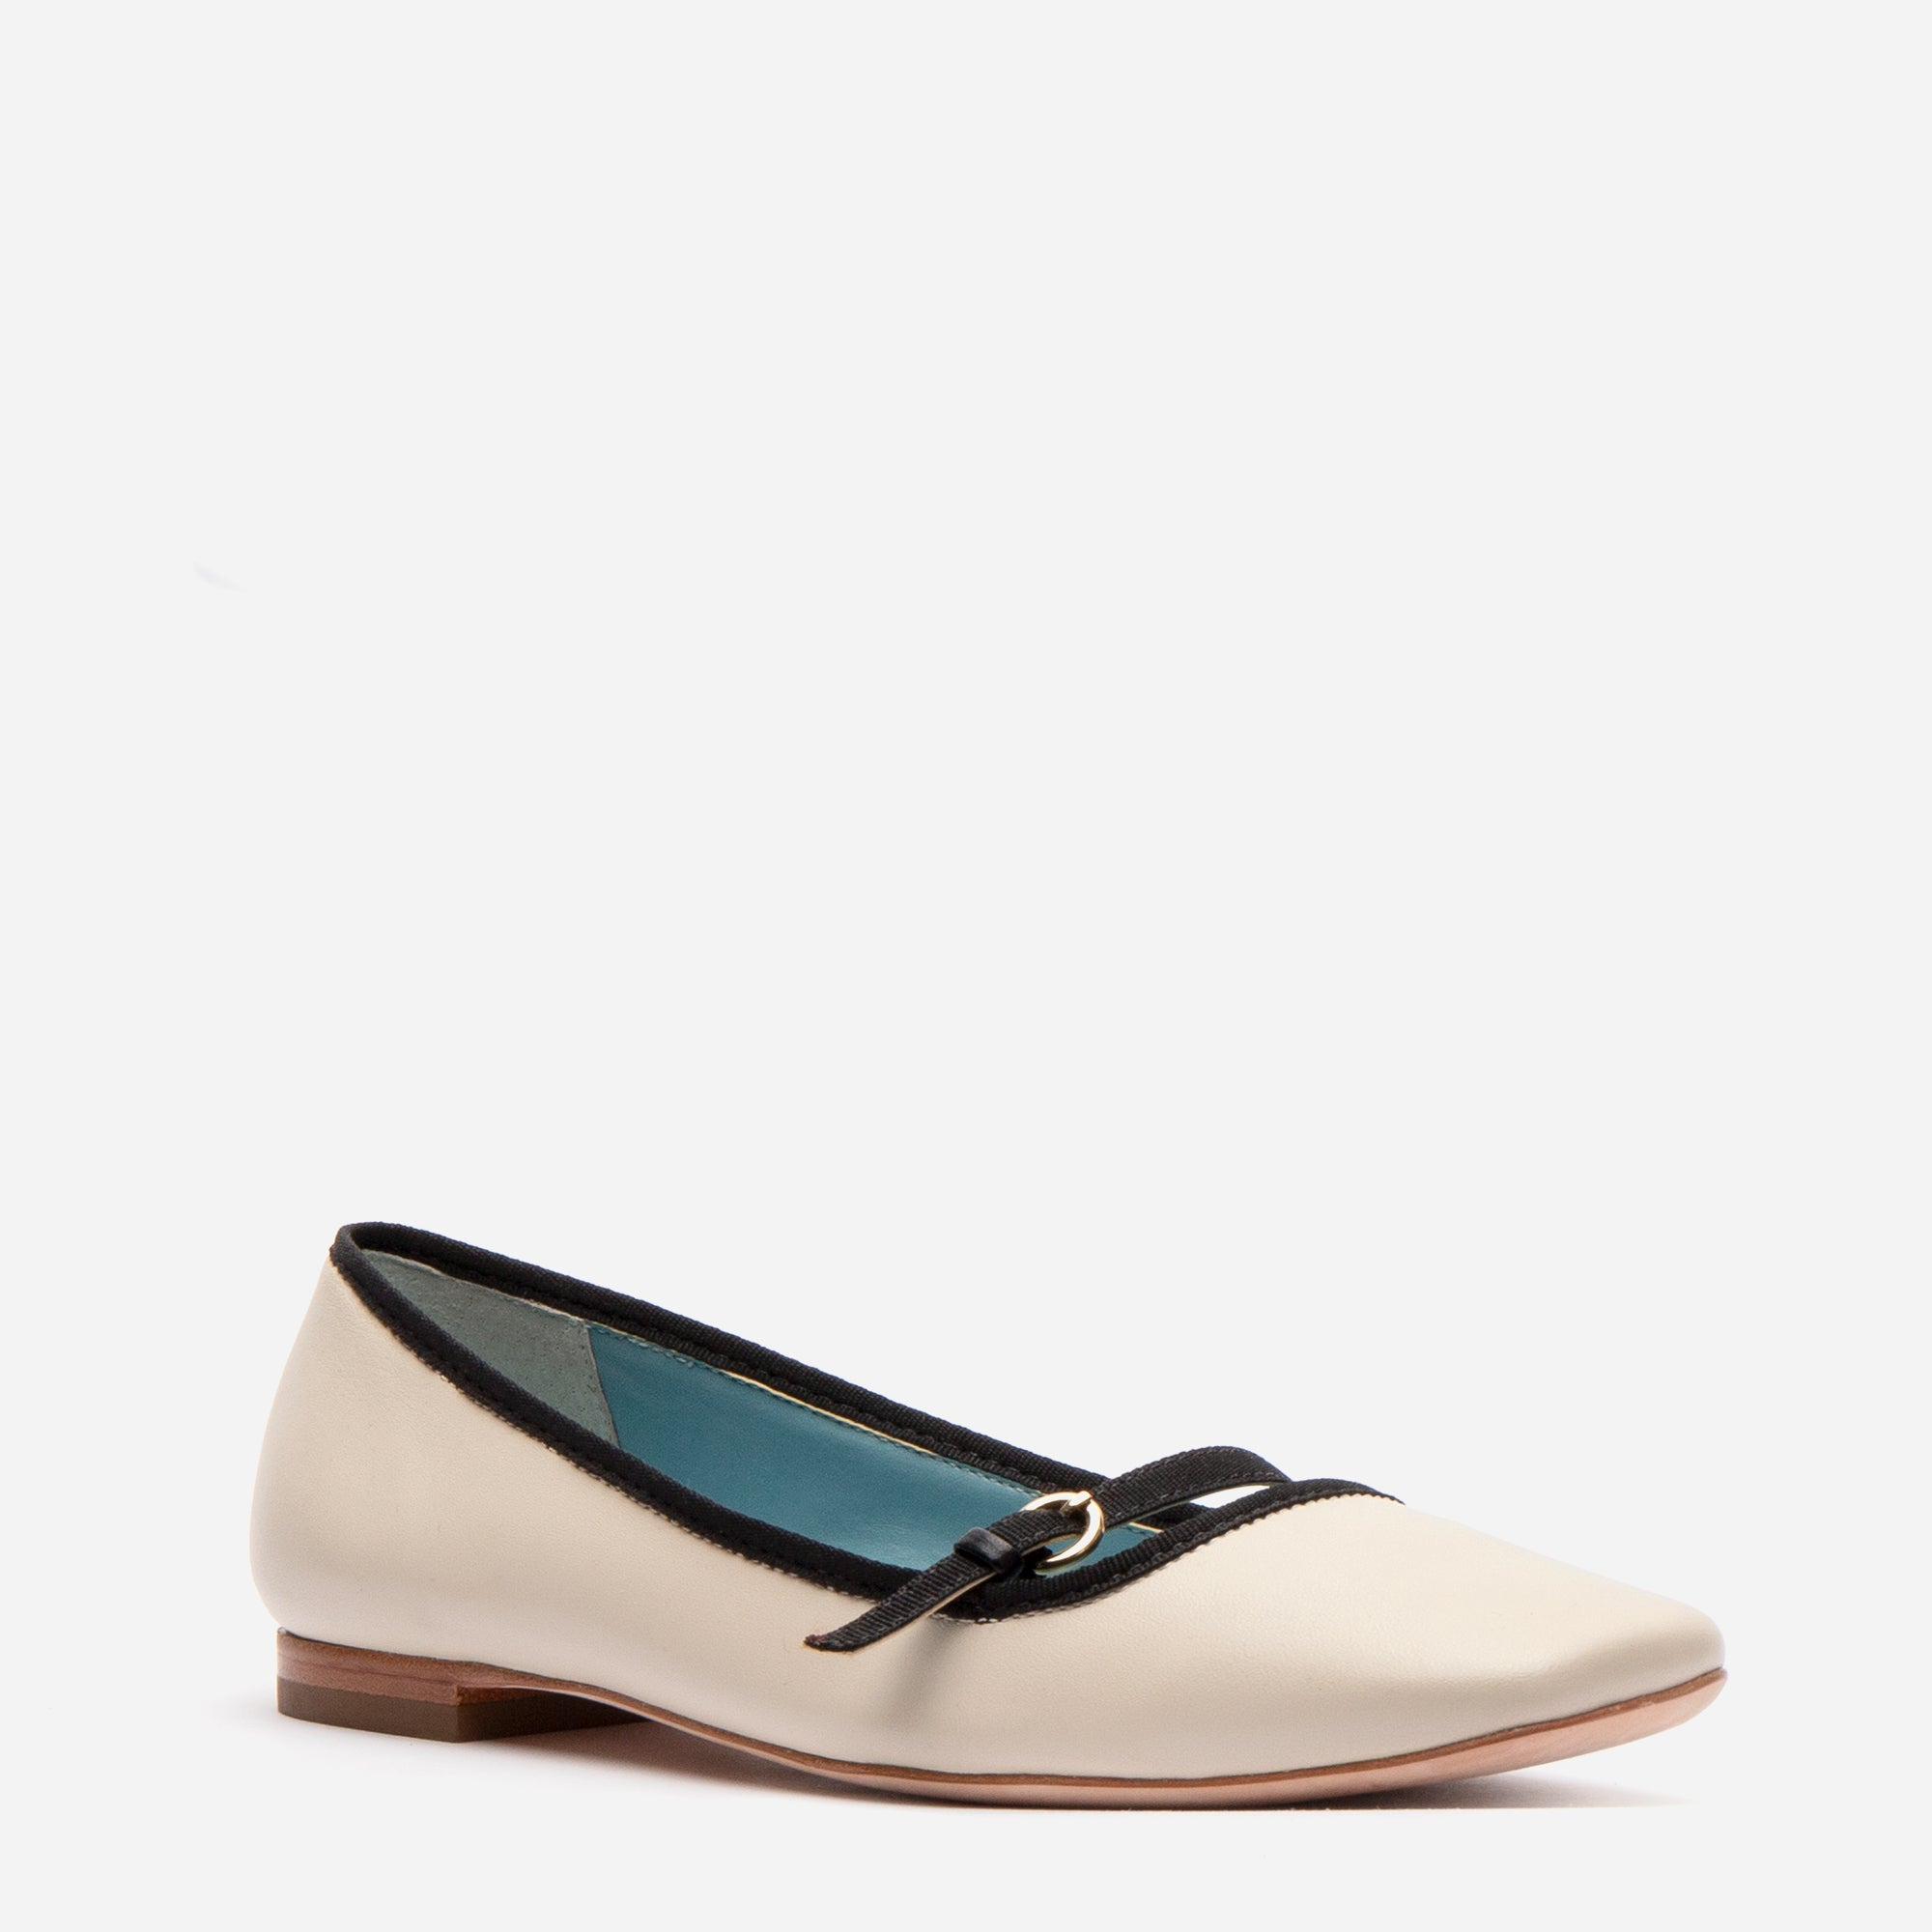 Josie Leather Flats Oyster Black